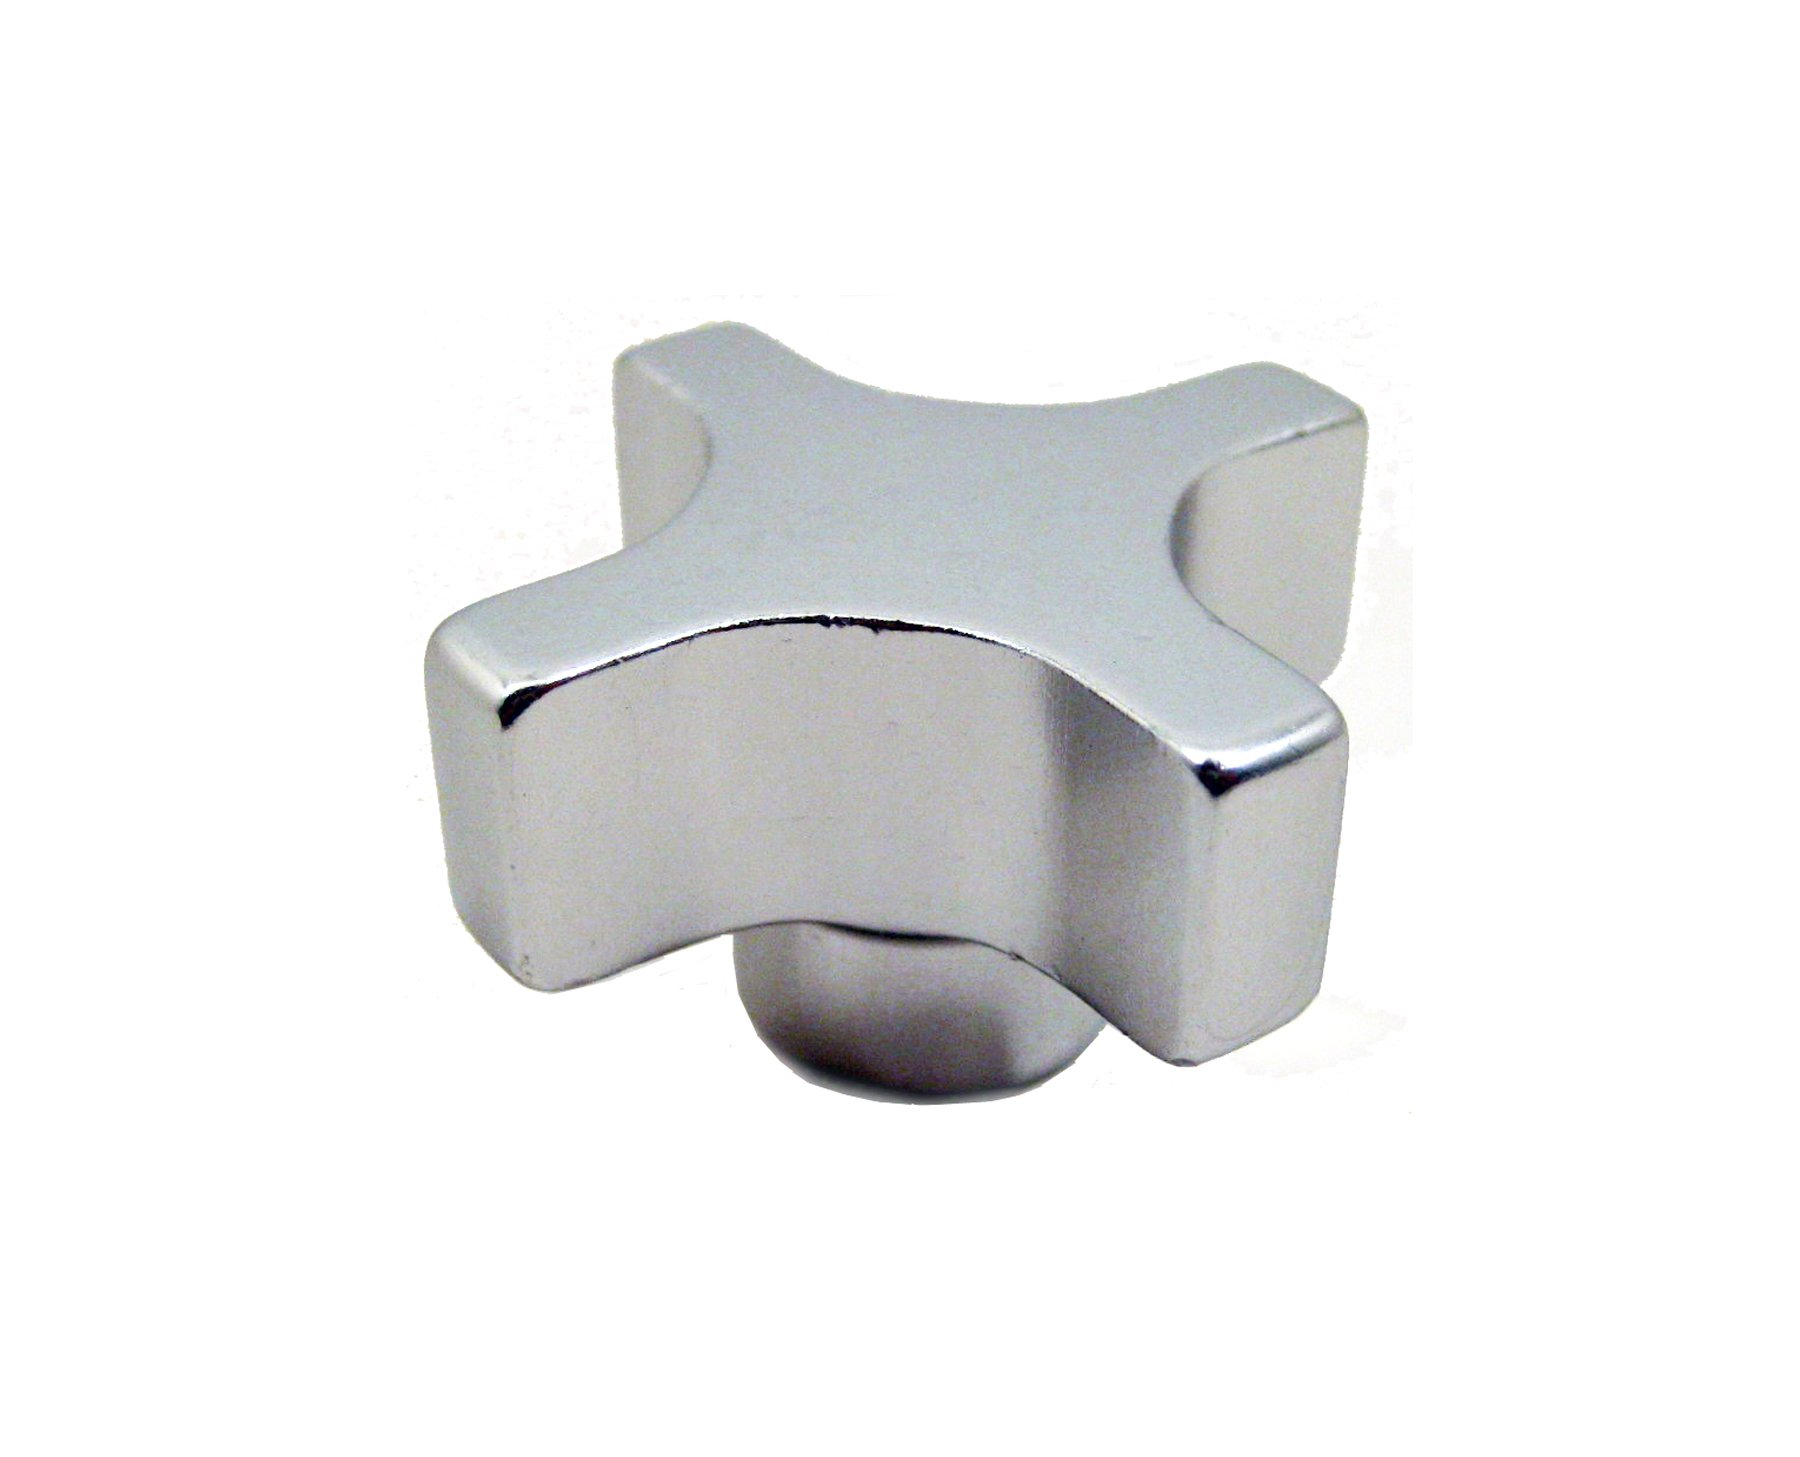 JW Winco Aluminum 6063-T5 Clamping Tapped Hand Knob, Threaded Hole, 5/8-11 Thread Size x 1-1/4 Thread Depth, 3'' Head Diameter (Pack of 1)